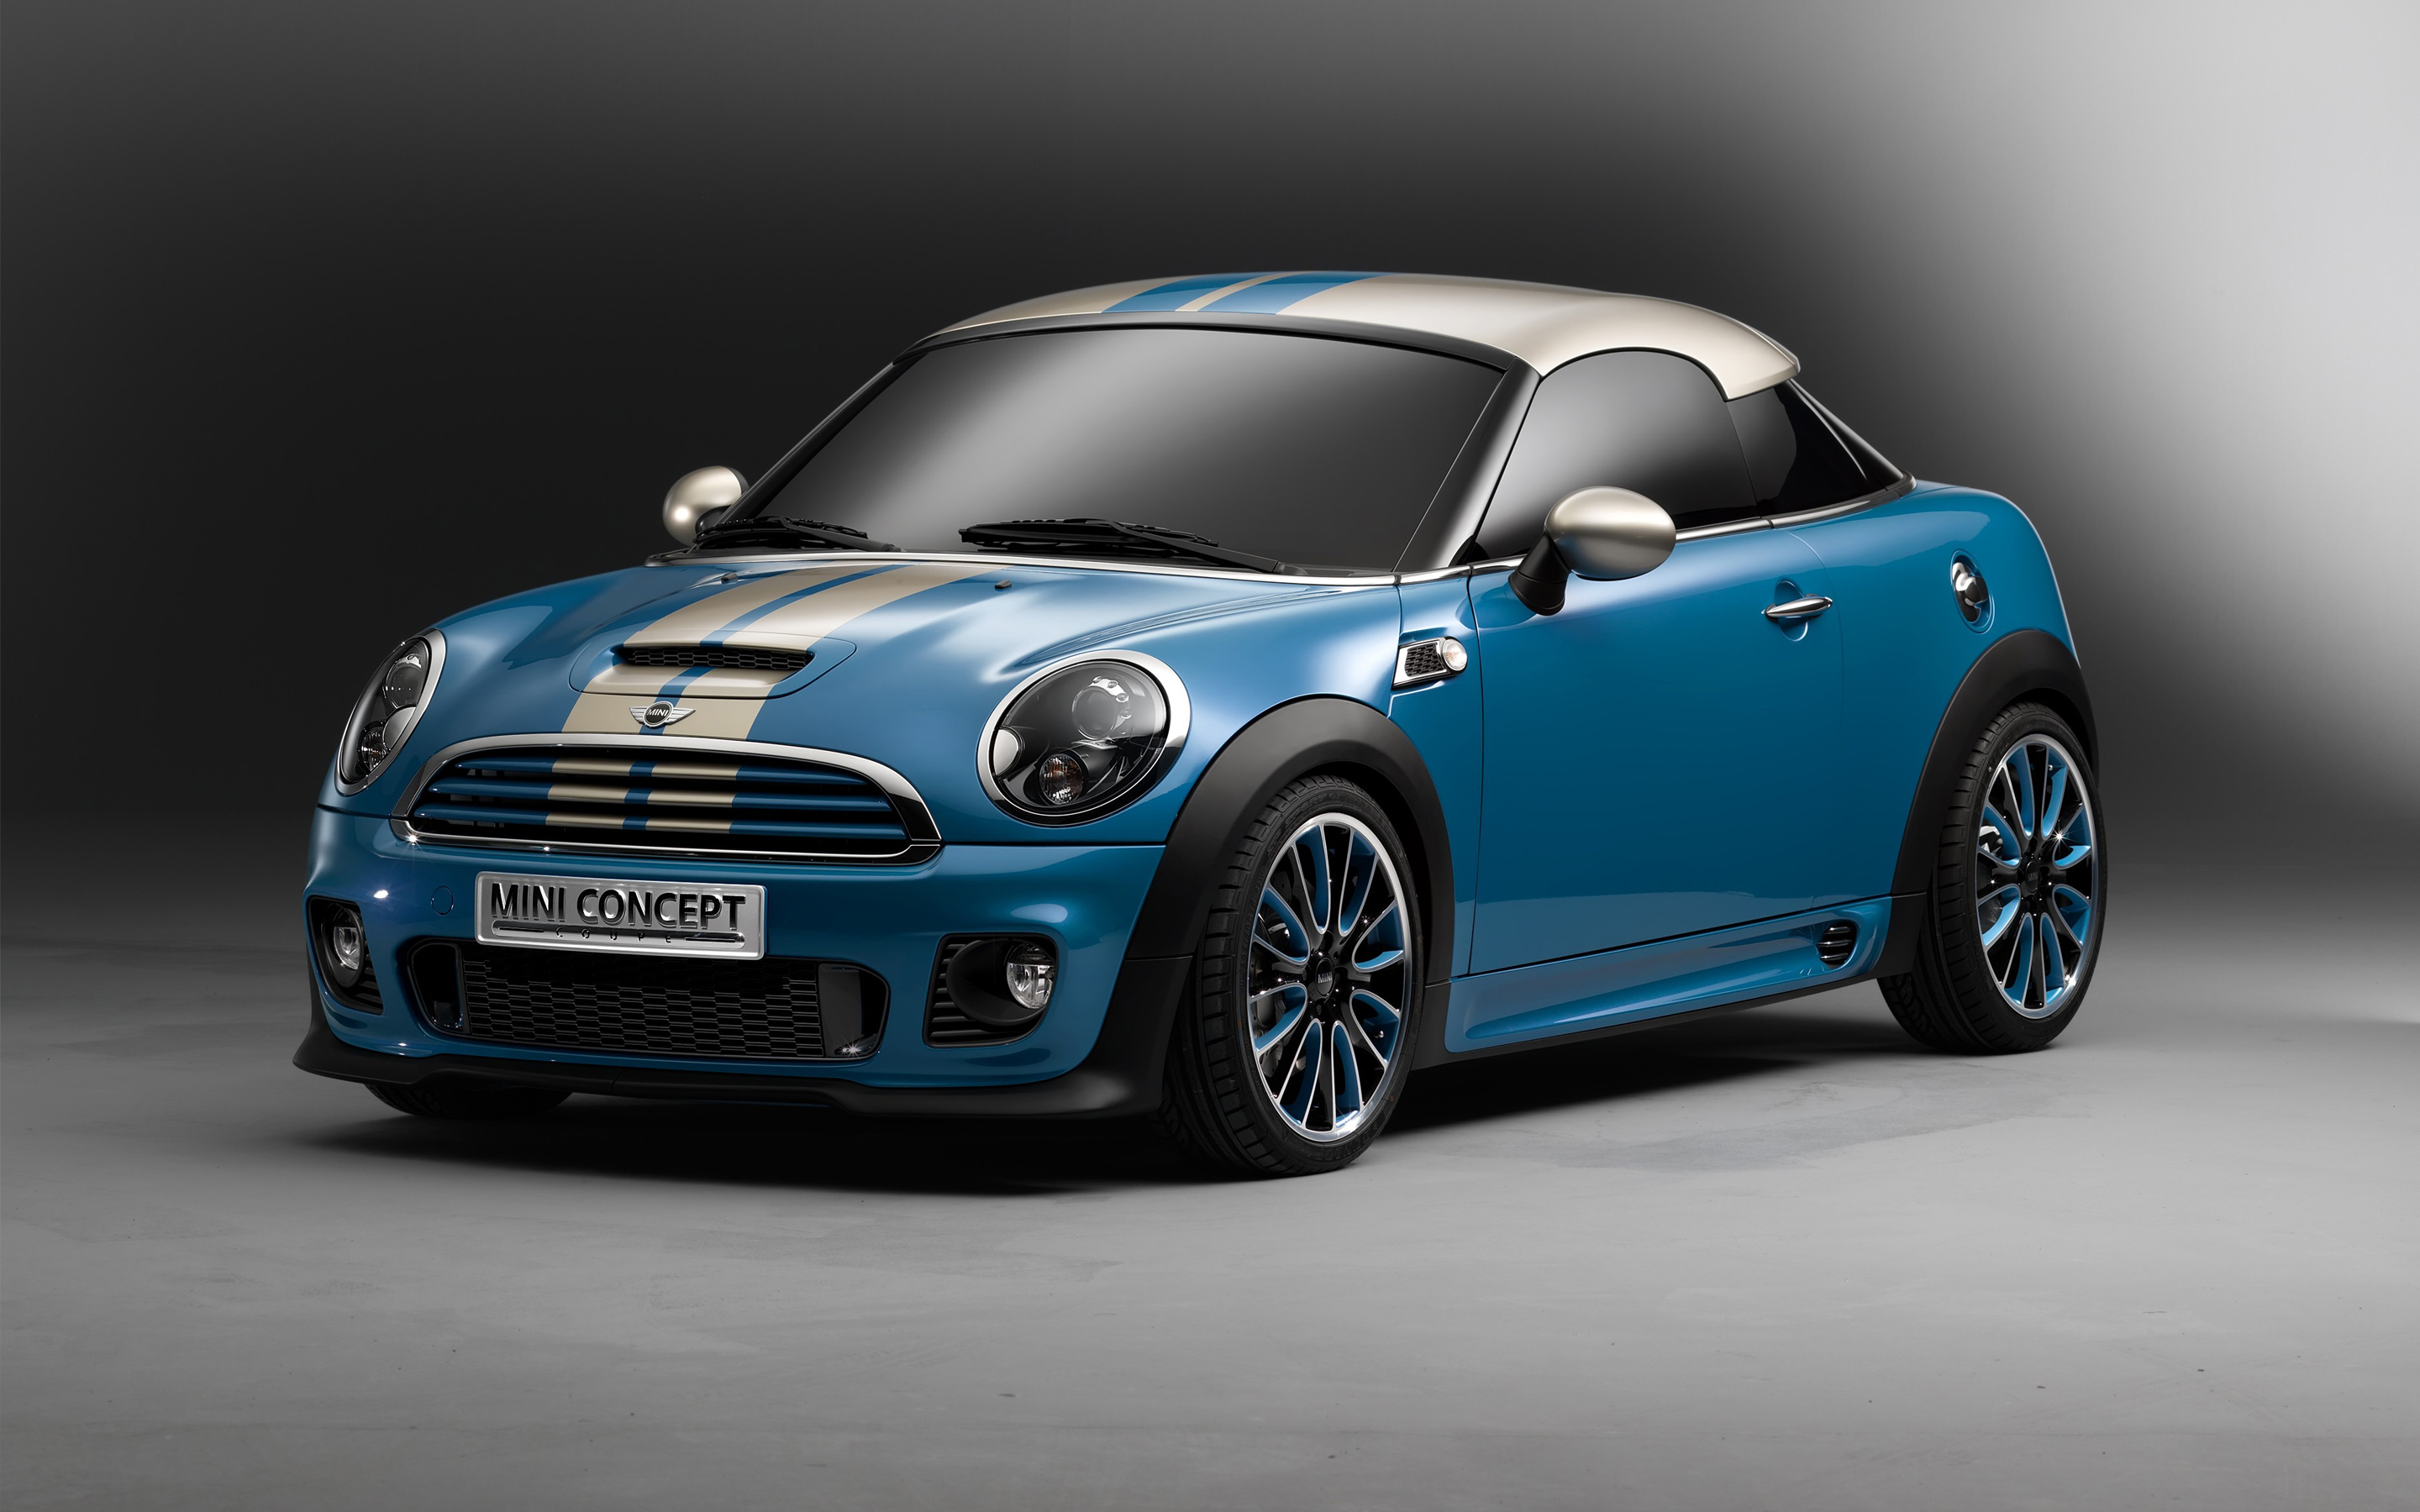 Mini Cooper Coupe Concept Wallpaper  Hd Car Wallpapers